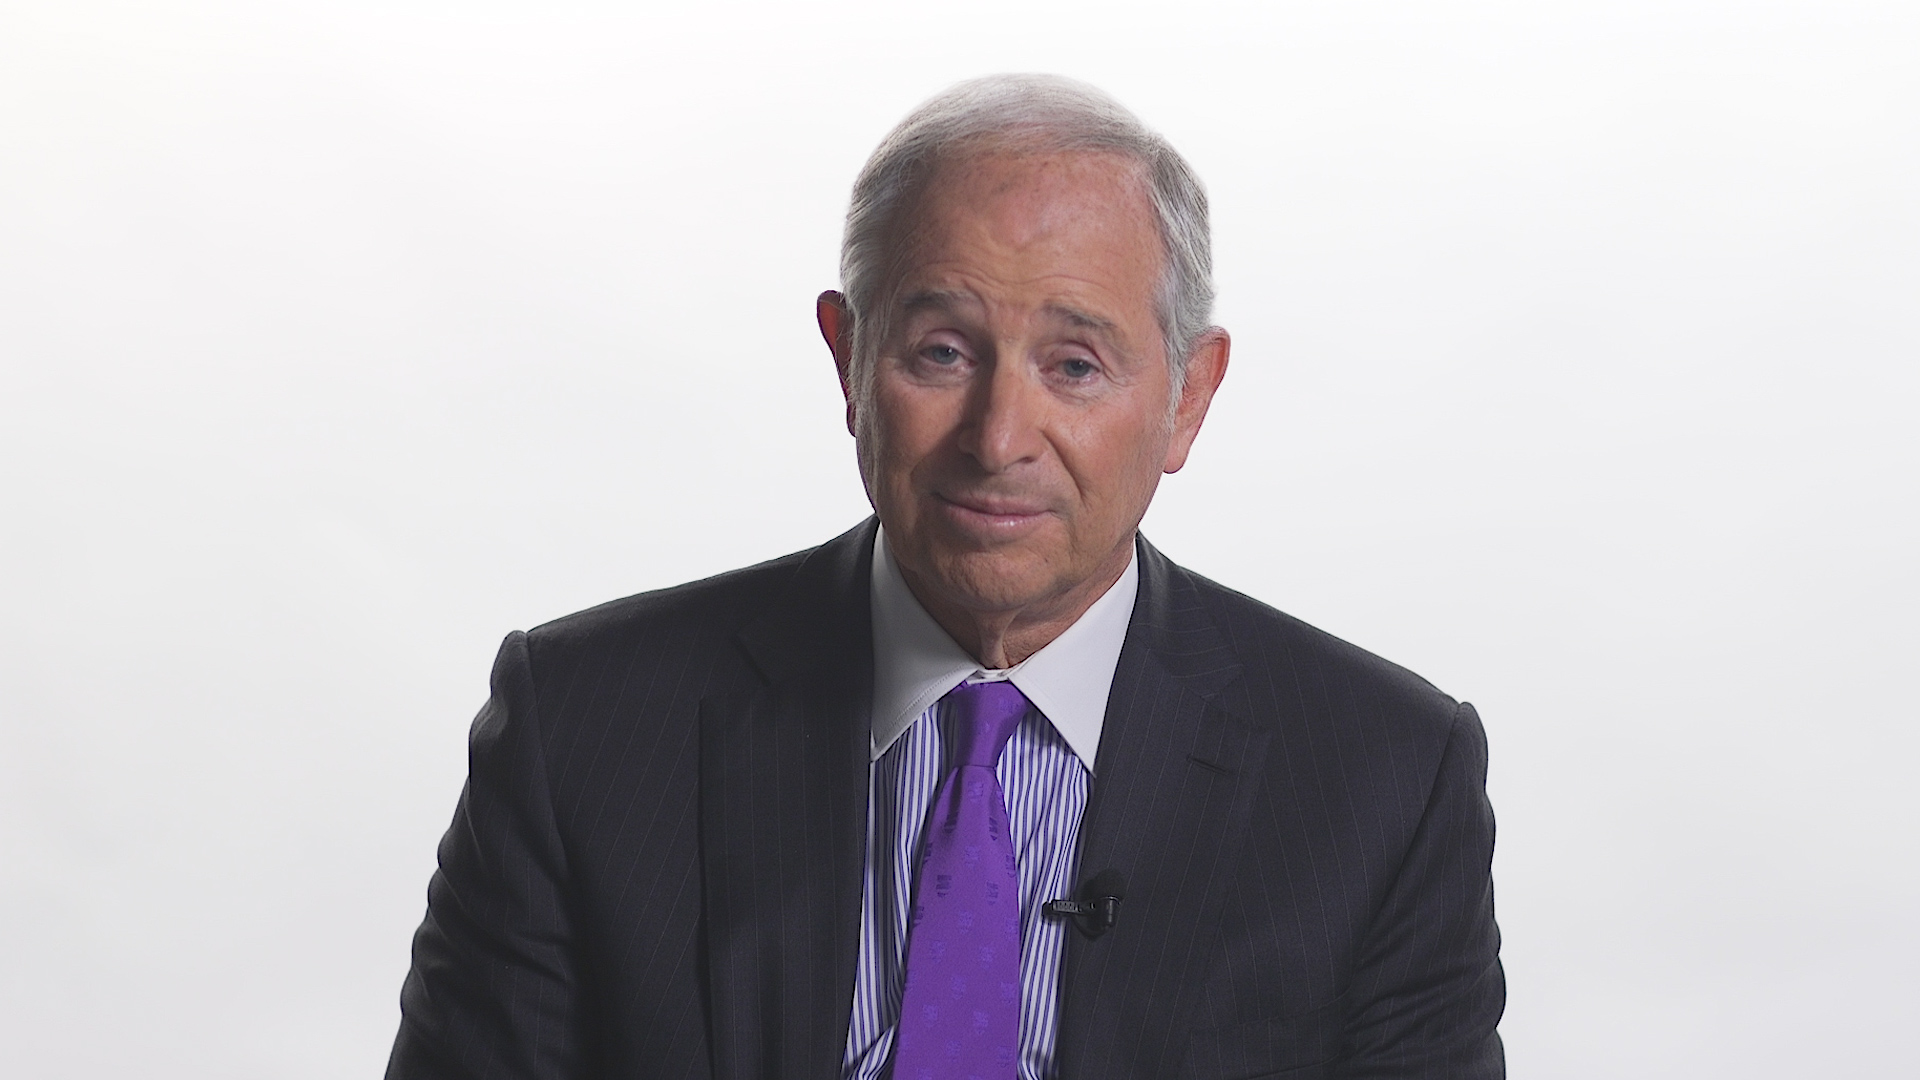 Blackstone CEO Stephen Schwarzman: How to prioritize problems in a business